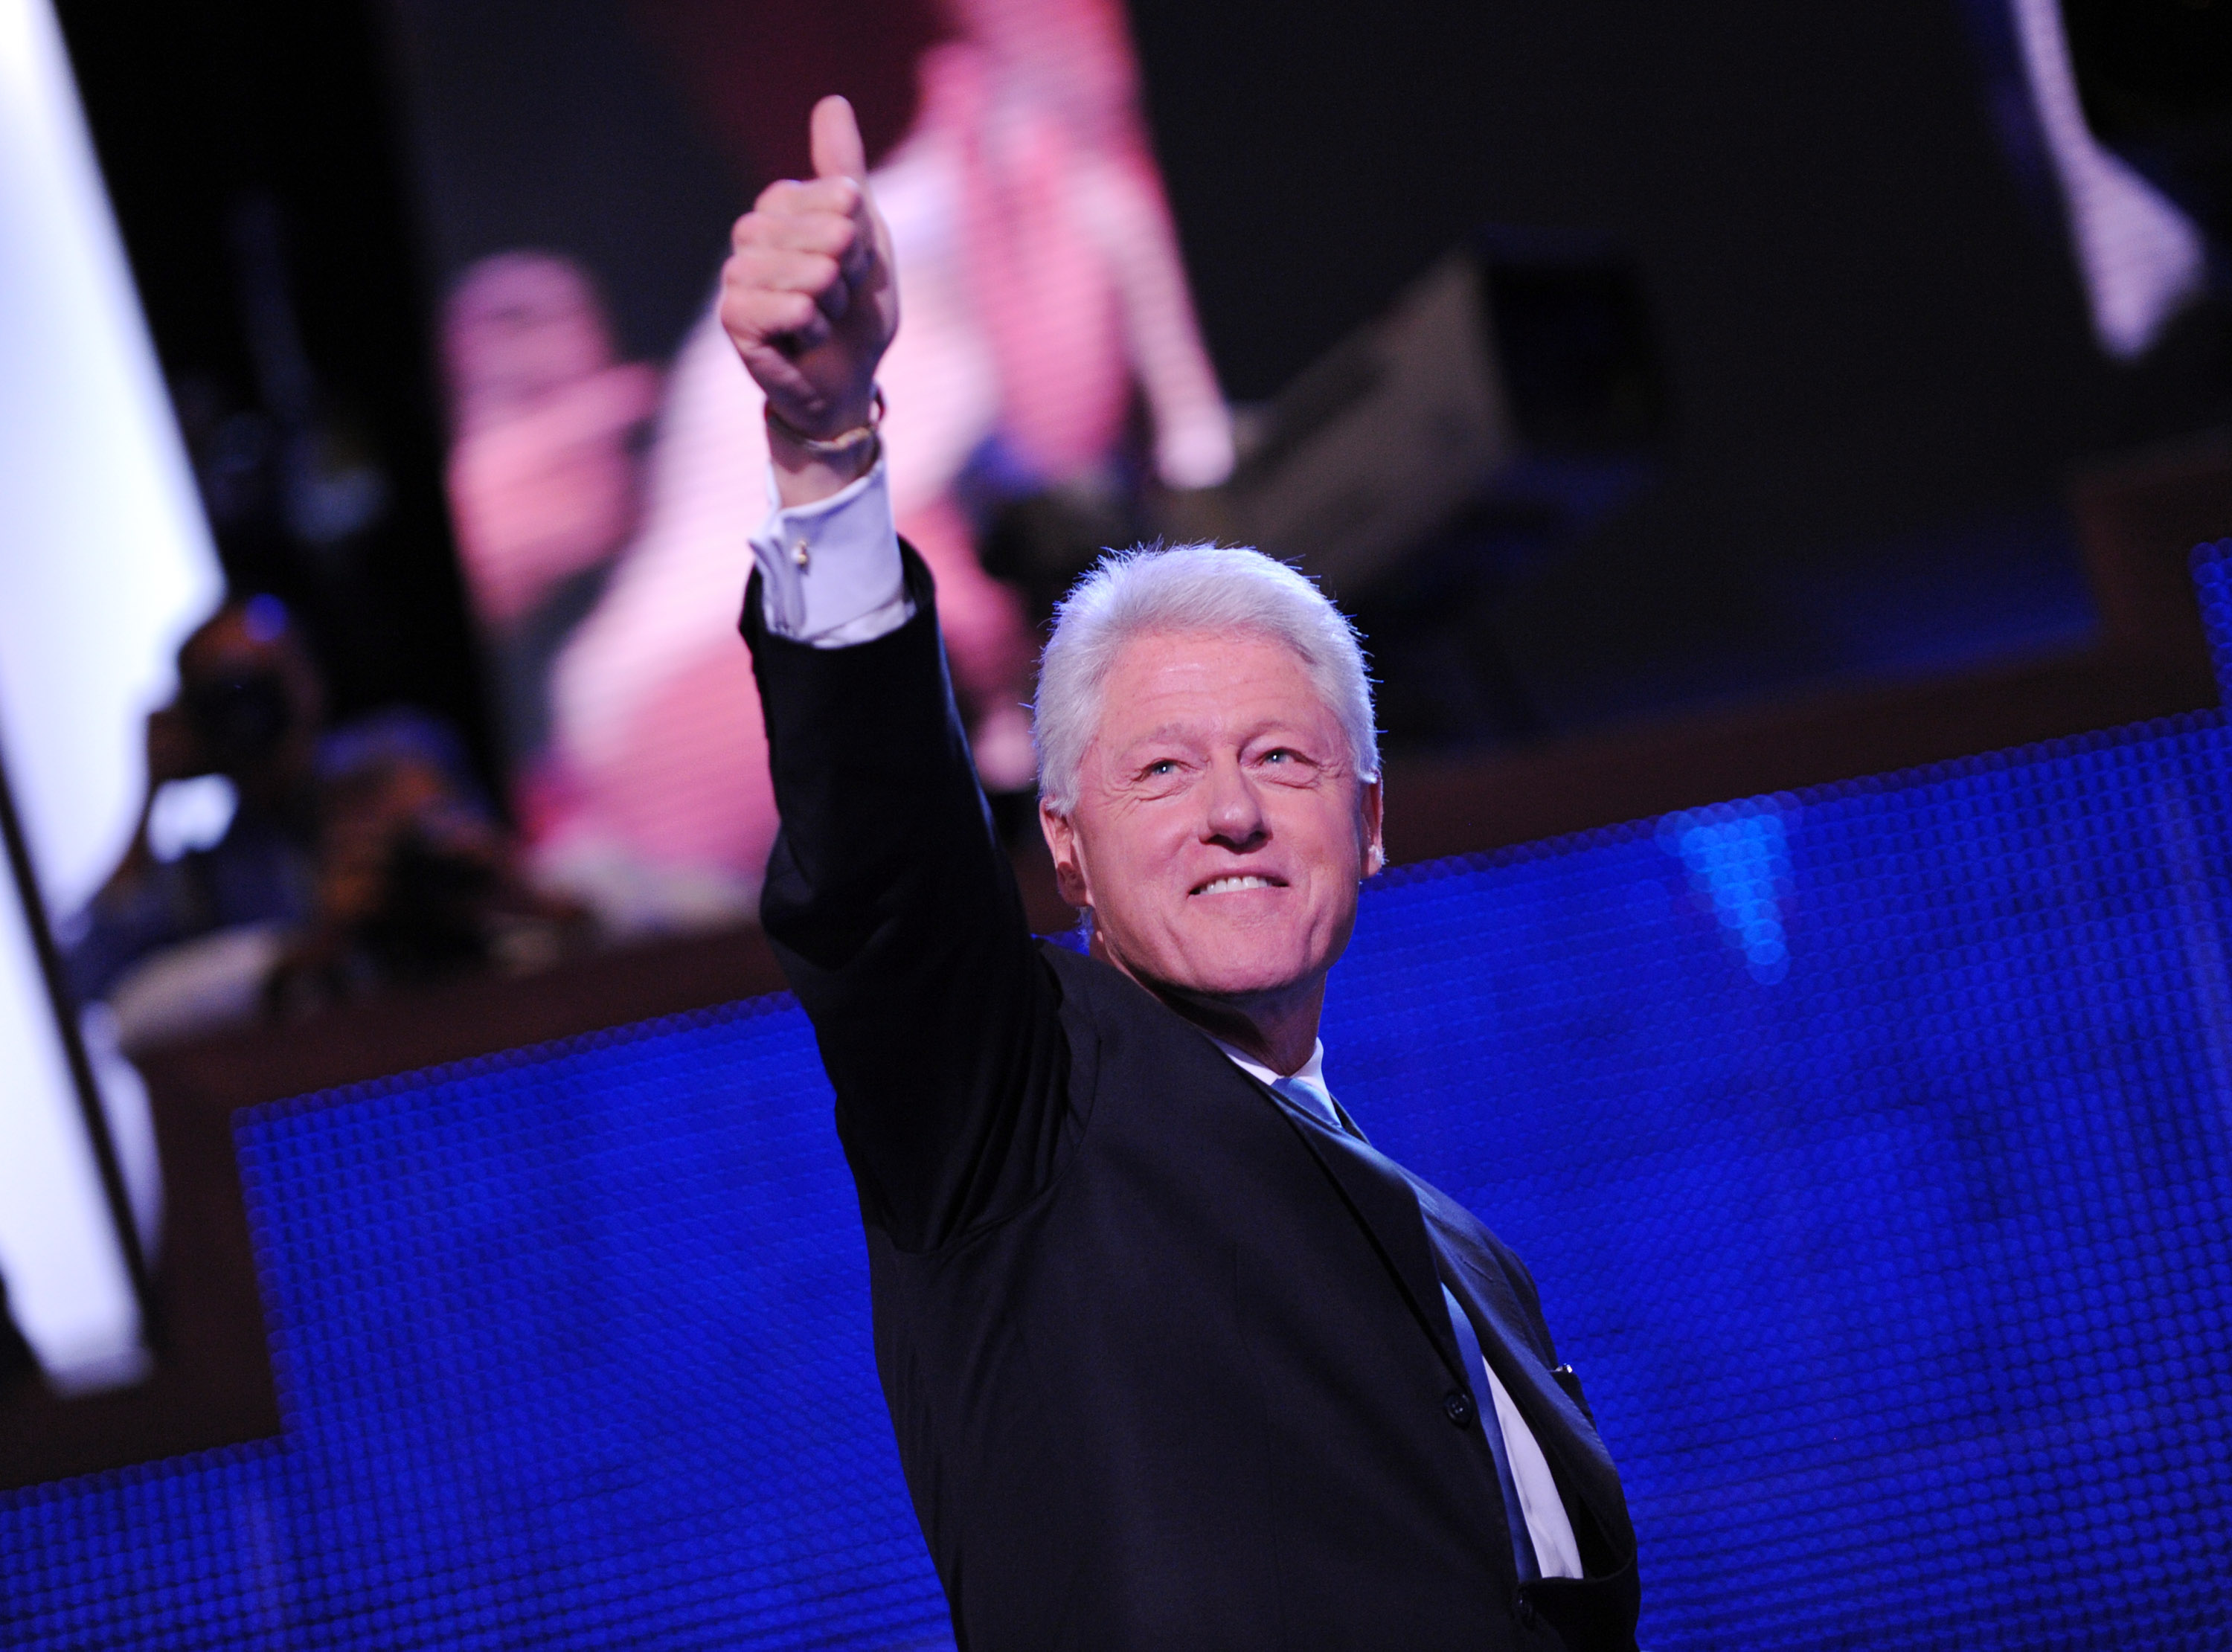 Former President Bill Clinton flashes a thumbs up following